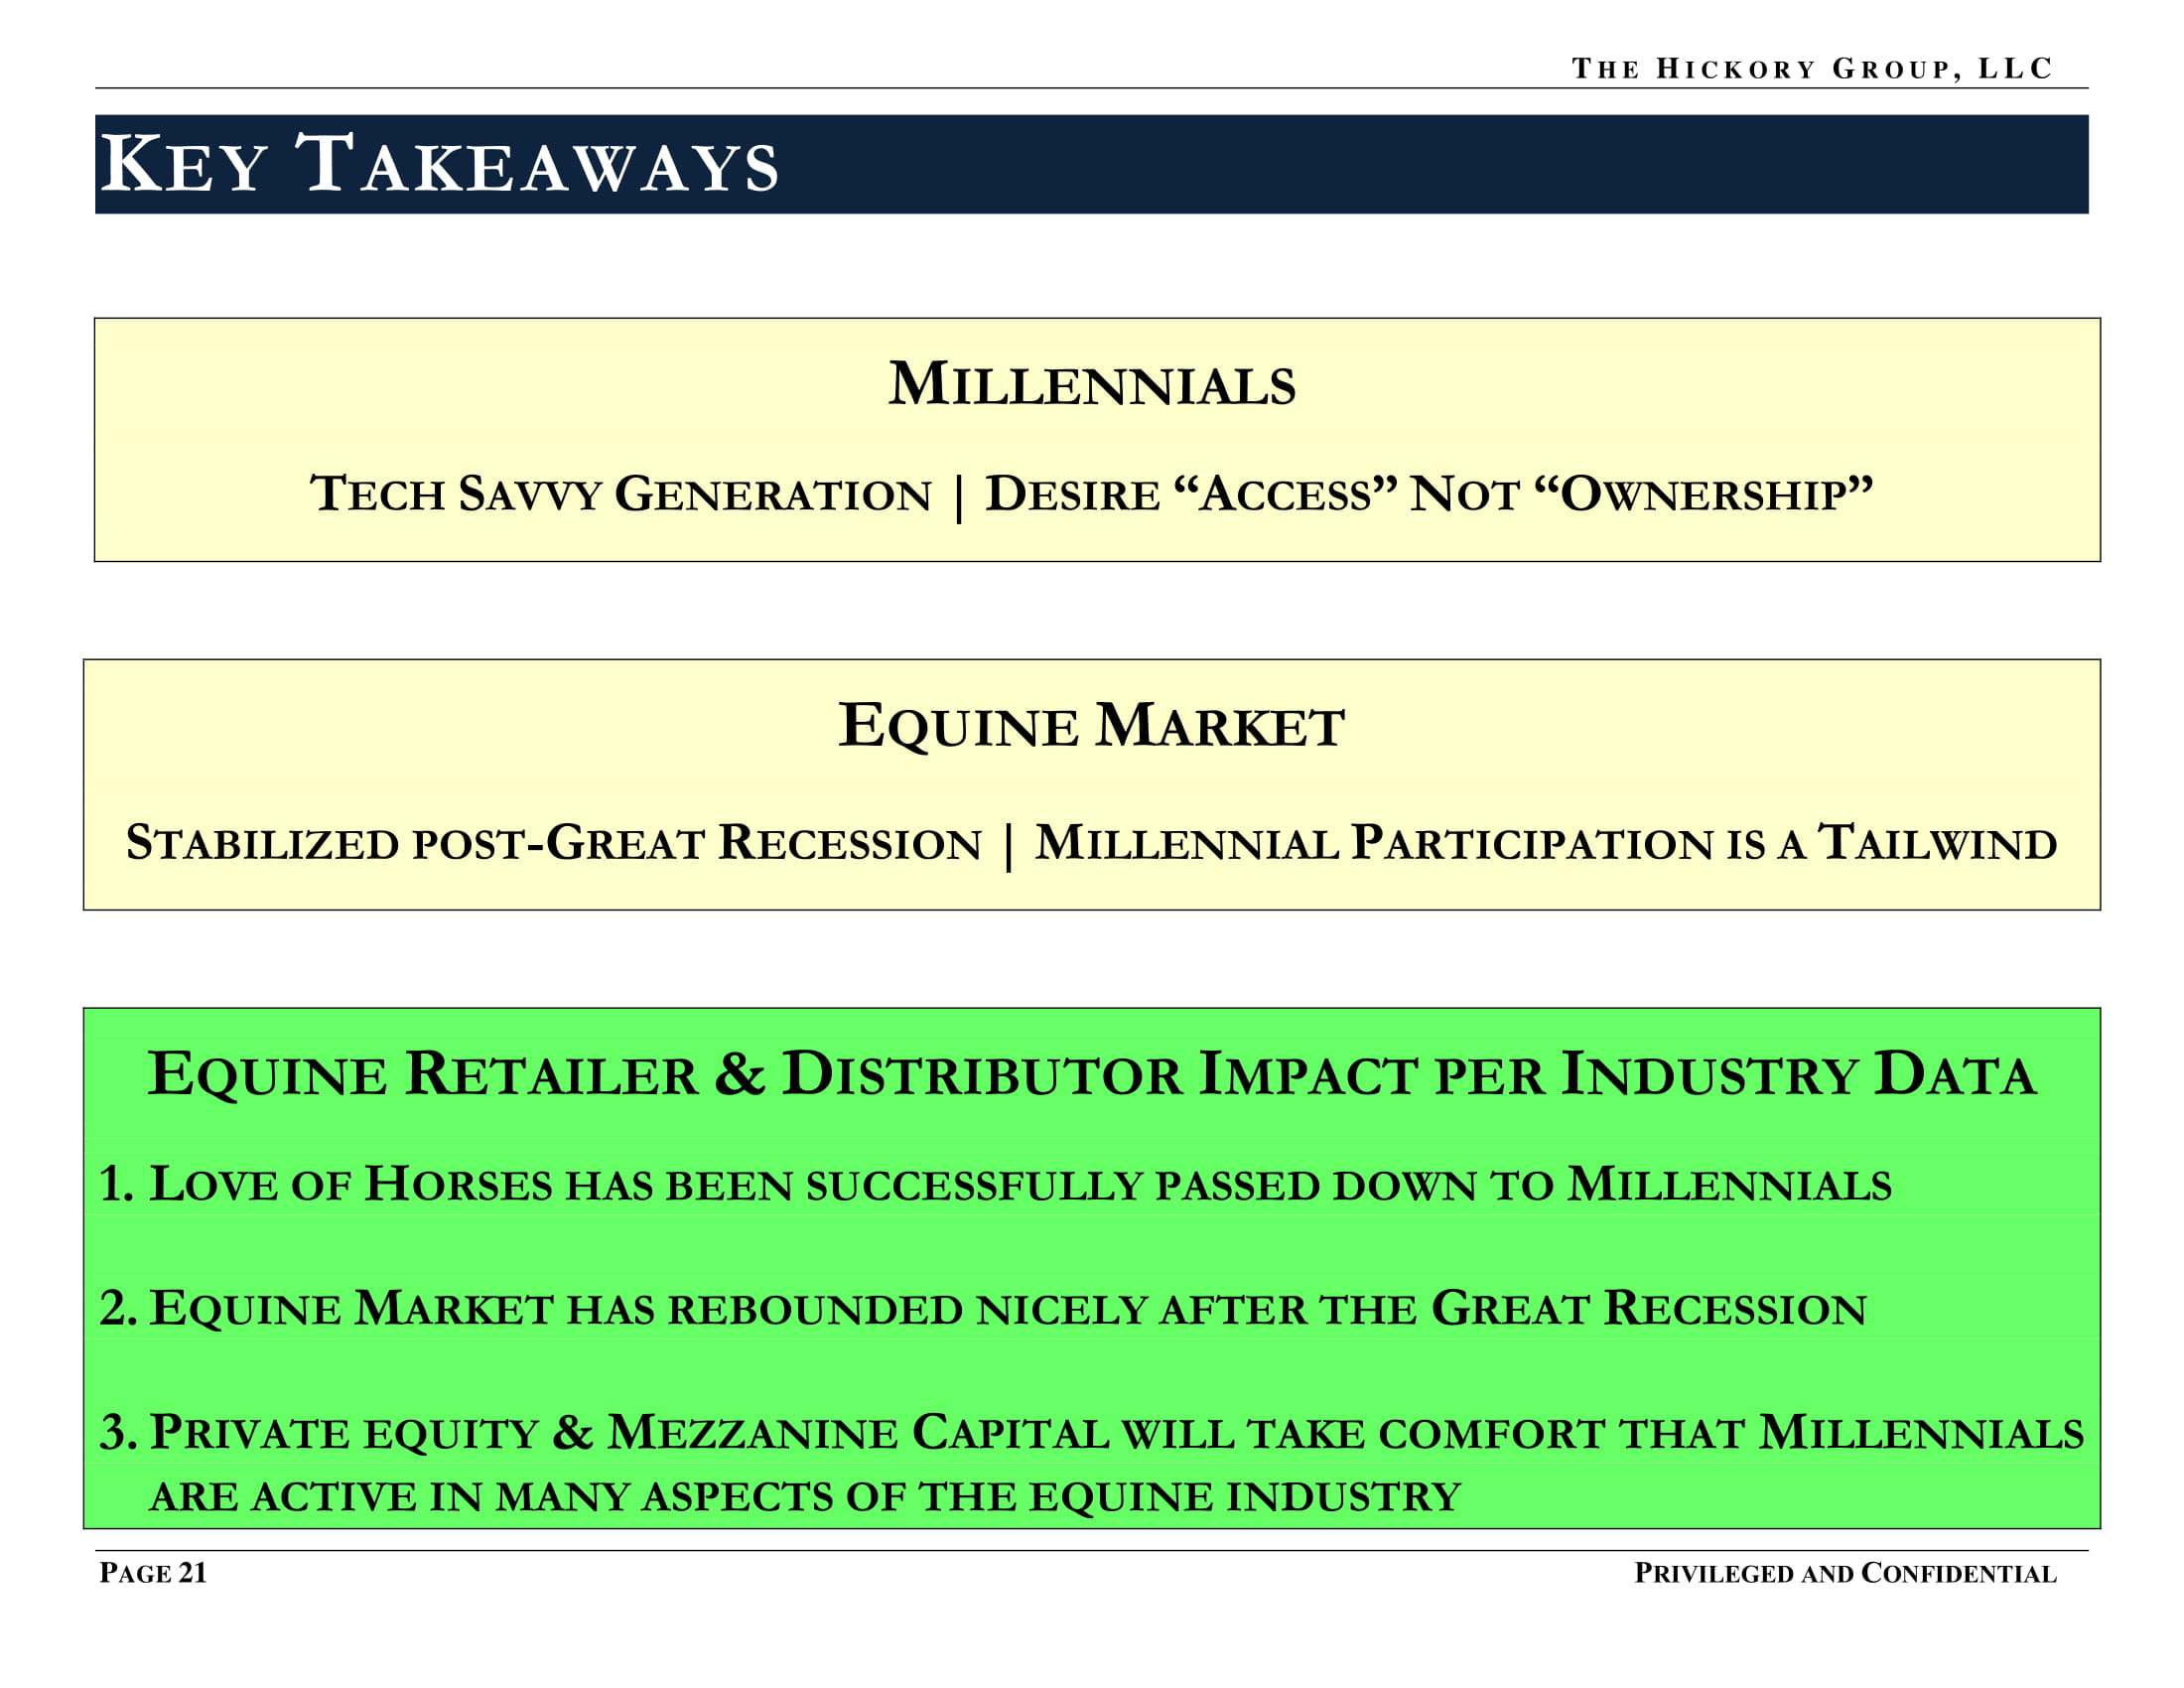 PUBLIC FINAL _Millennials and Equine Market Summary (15 November 2017) Privileged and Confidential-21.jpg